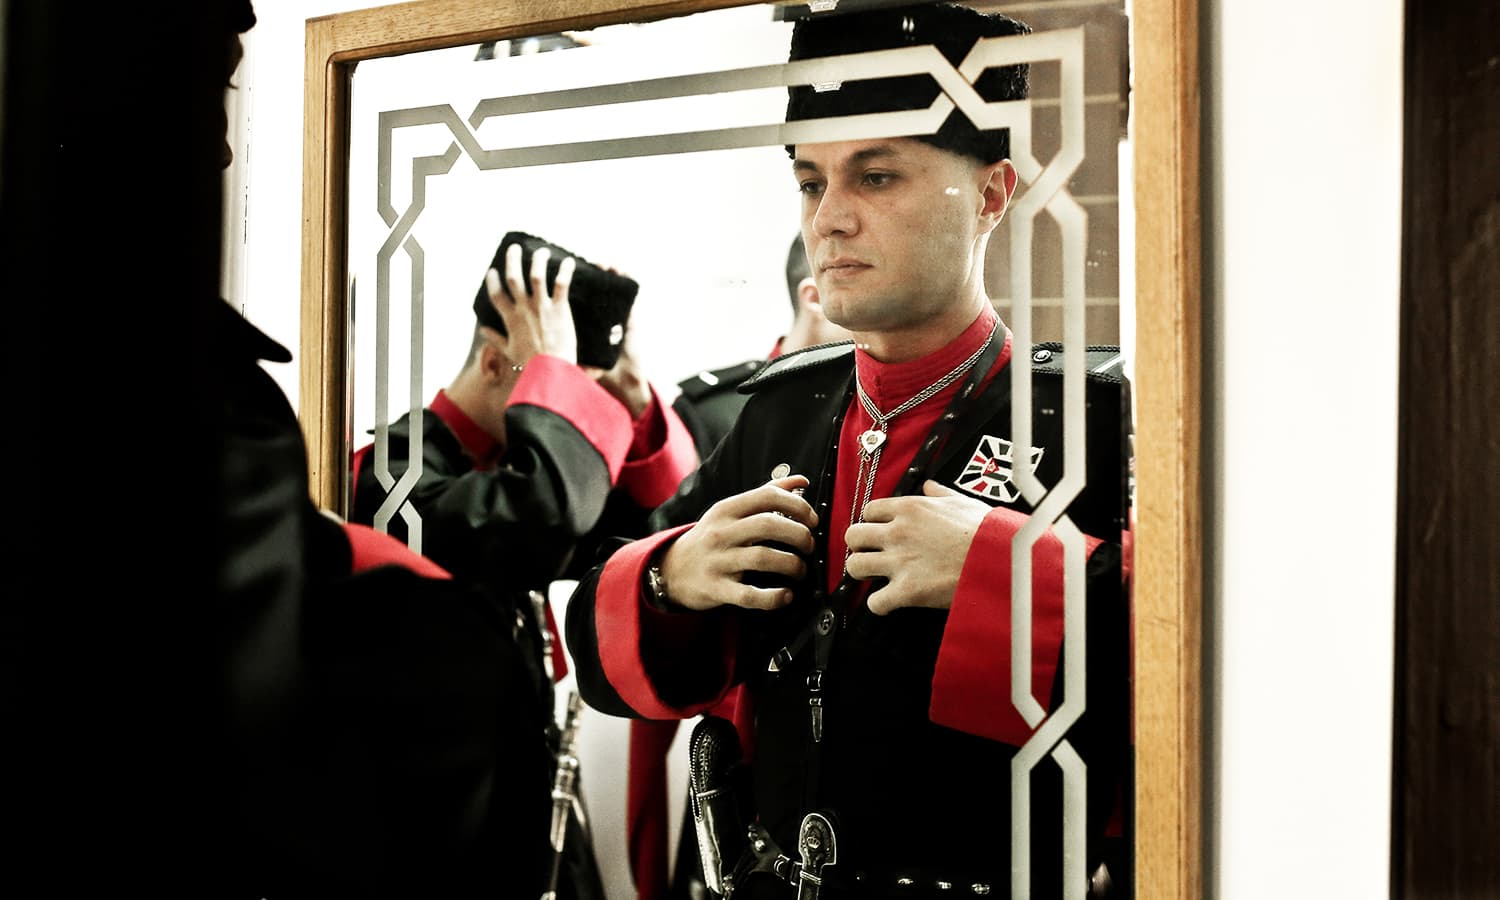 36 year-old Circassian Warrant Officer Zaid Hosni Younis adjusts his 'Hazar' or cylinders on both sides of the chest which were used to hold gunpowder, inside the Circassian Headquarters in Basman Palace. ─ AP